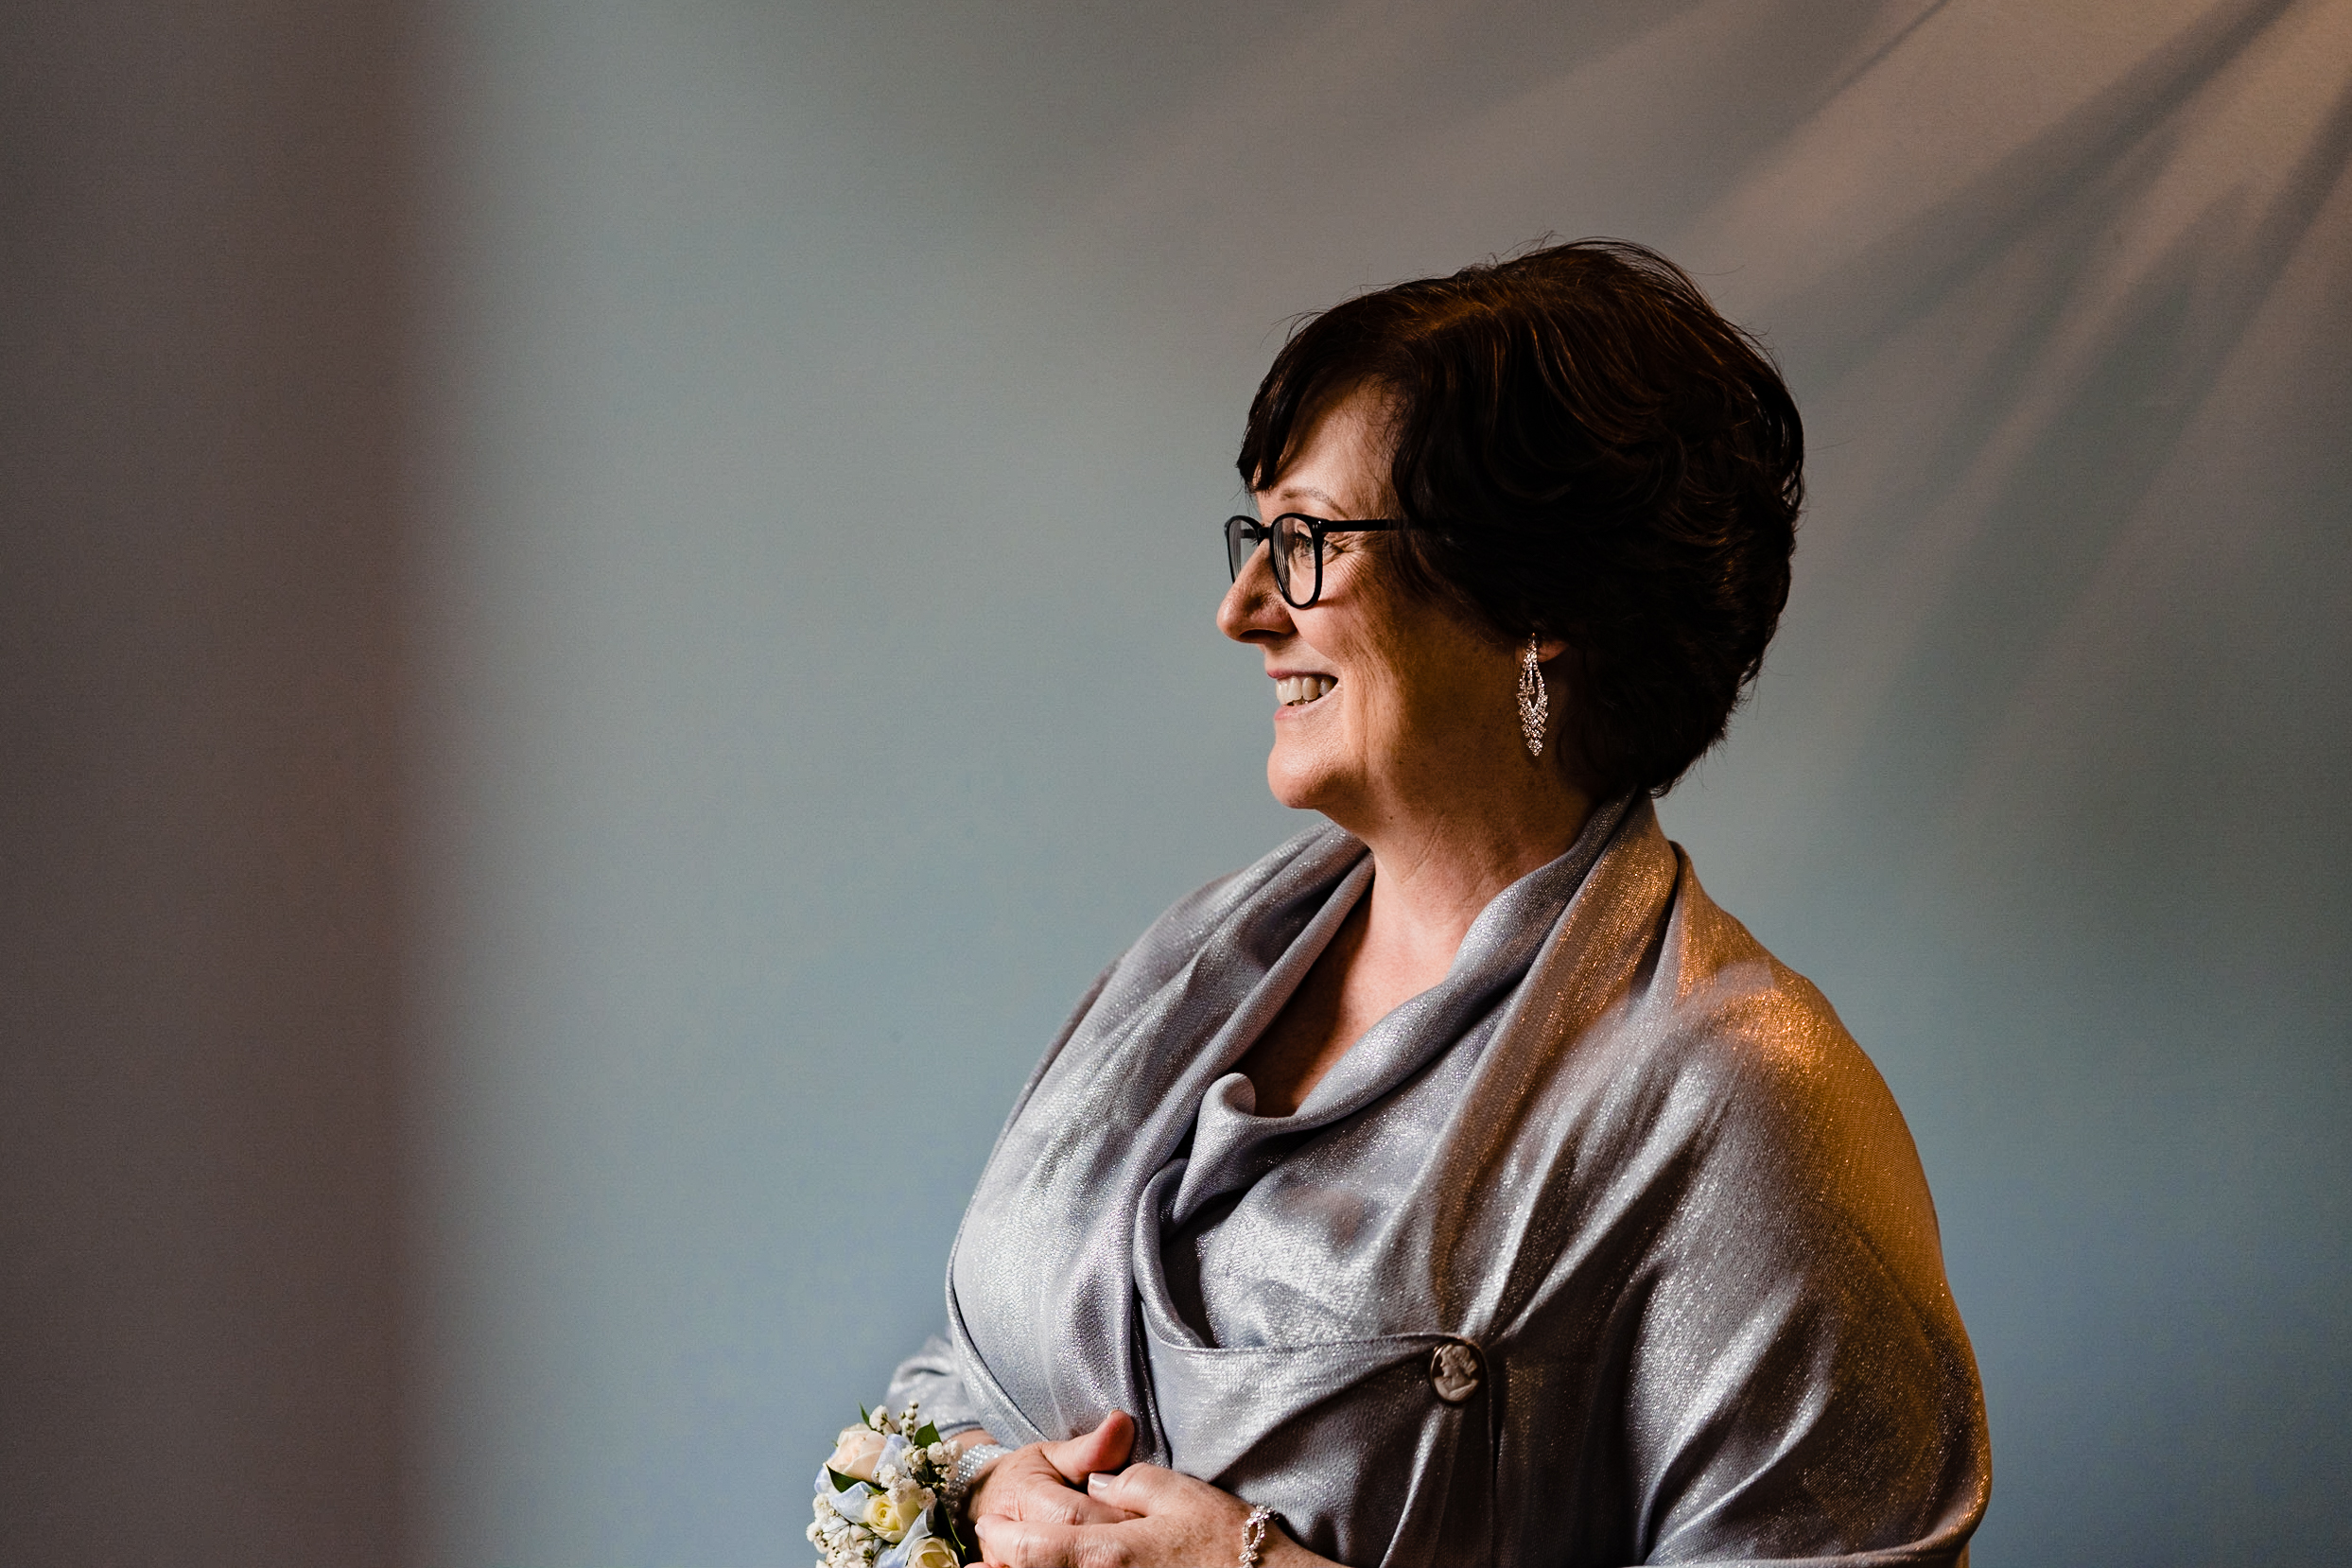 Amanda&Pat-Halifax-LordNelson-Wedding-Summer-NovaScotia (38 of 96).jpg